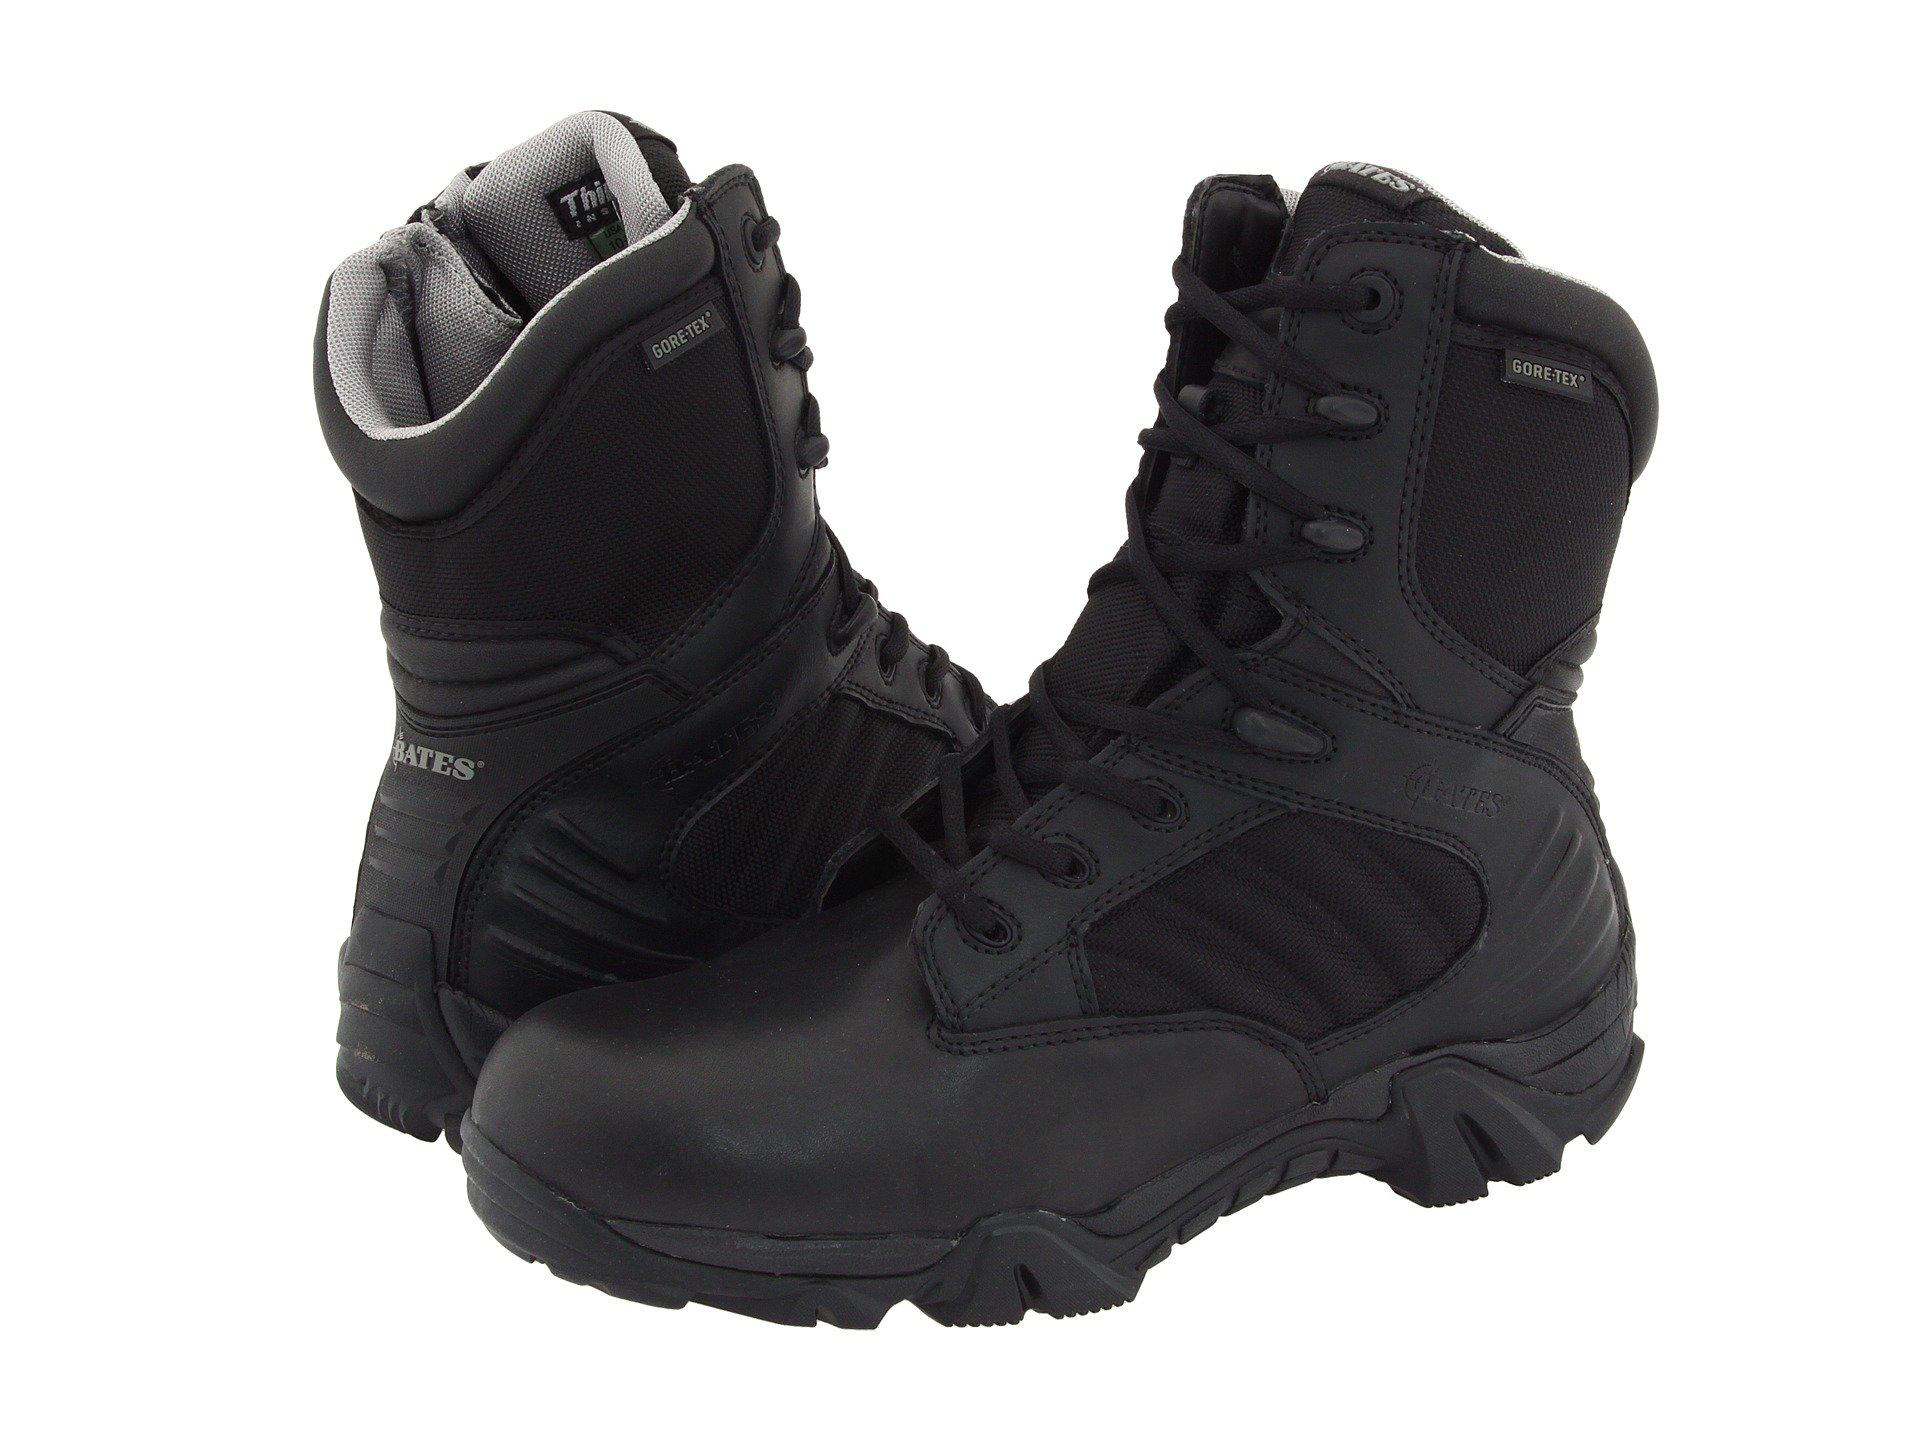 Bates FootwearGX-8 GORE-TEX? Side-Zip Boot fyJ3LbxvQ2